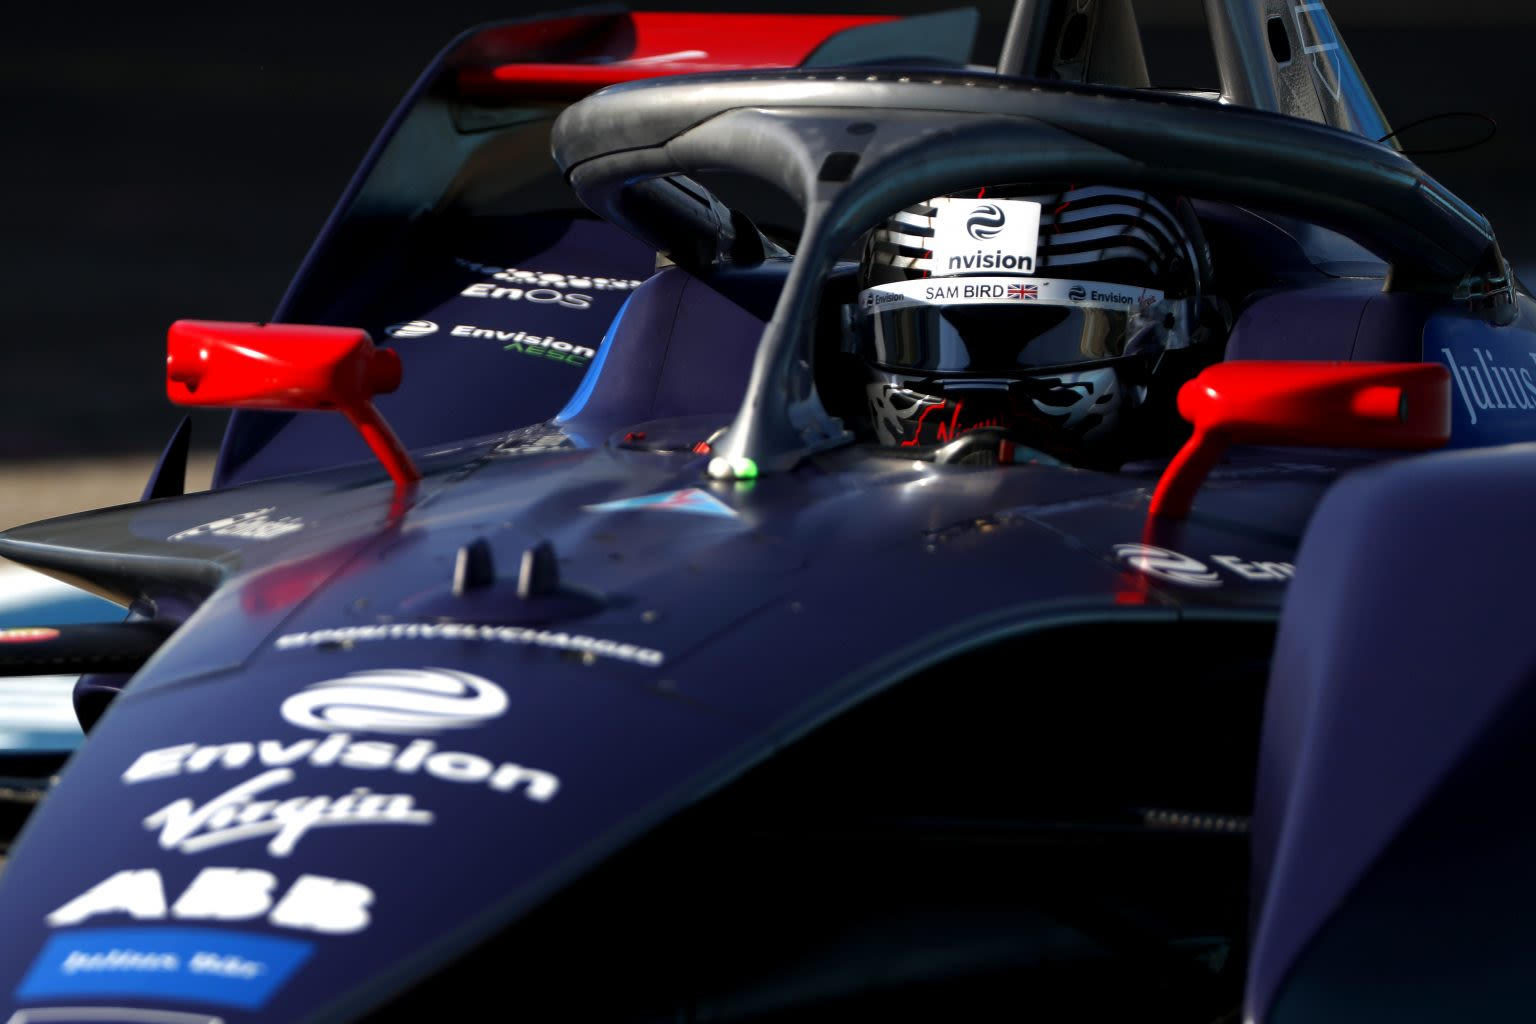 Sam Bird in an Envision Virgin Racing car